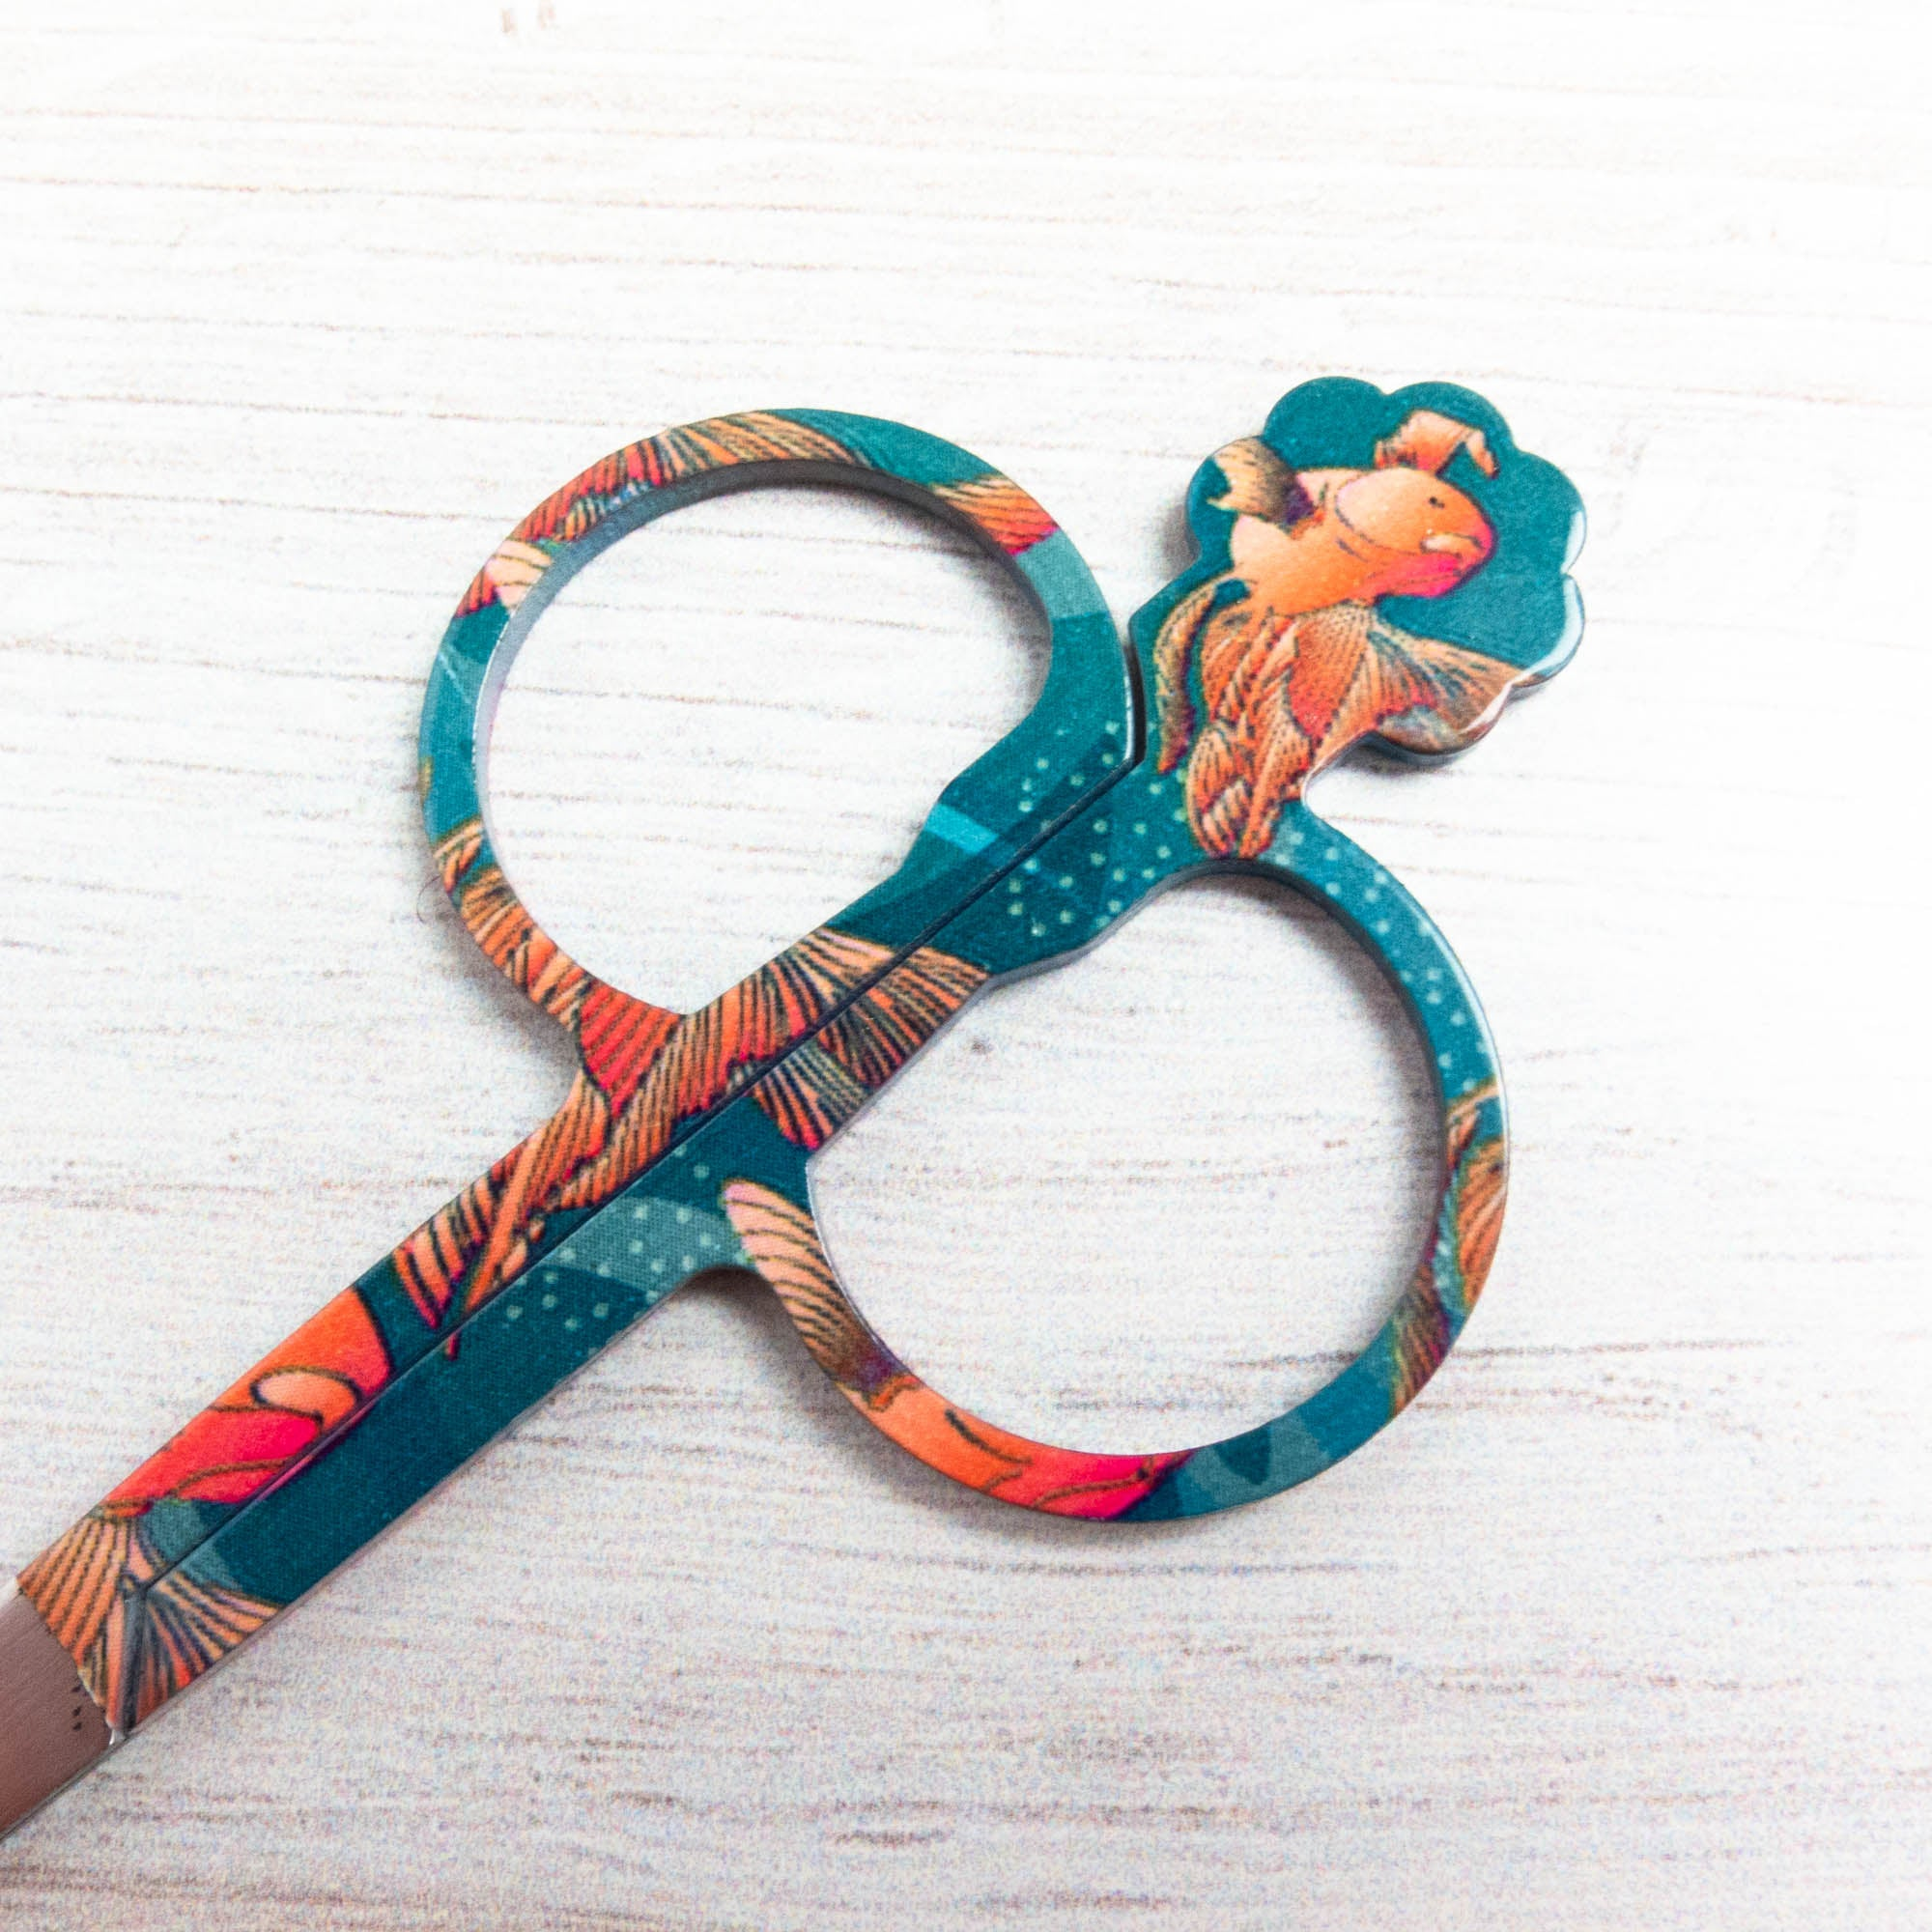 Bohin Embroidery Scissors - Carp Scissors - Snuggly Monkey